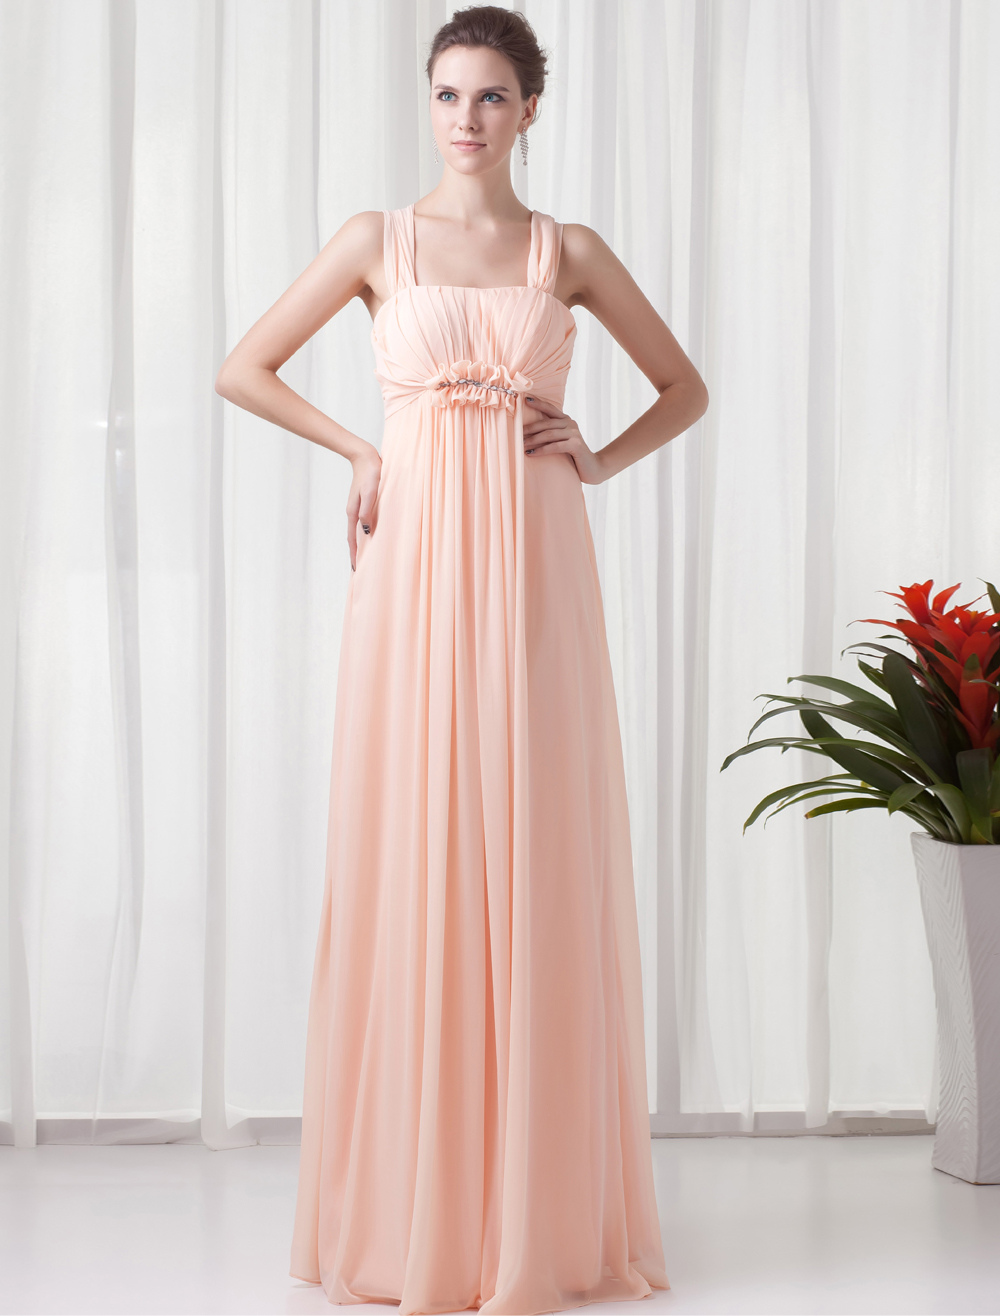 maternity bridesmaid dresses, plus size maternity bridesmaid dresses ...